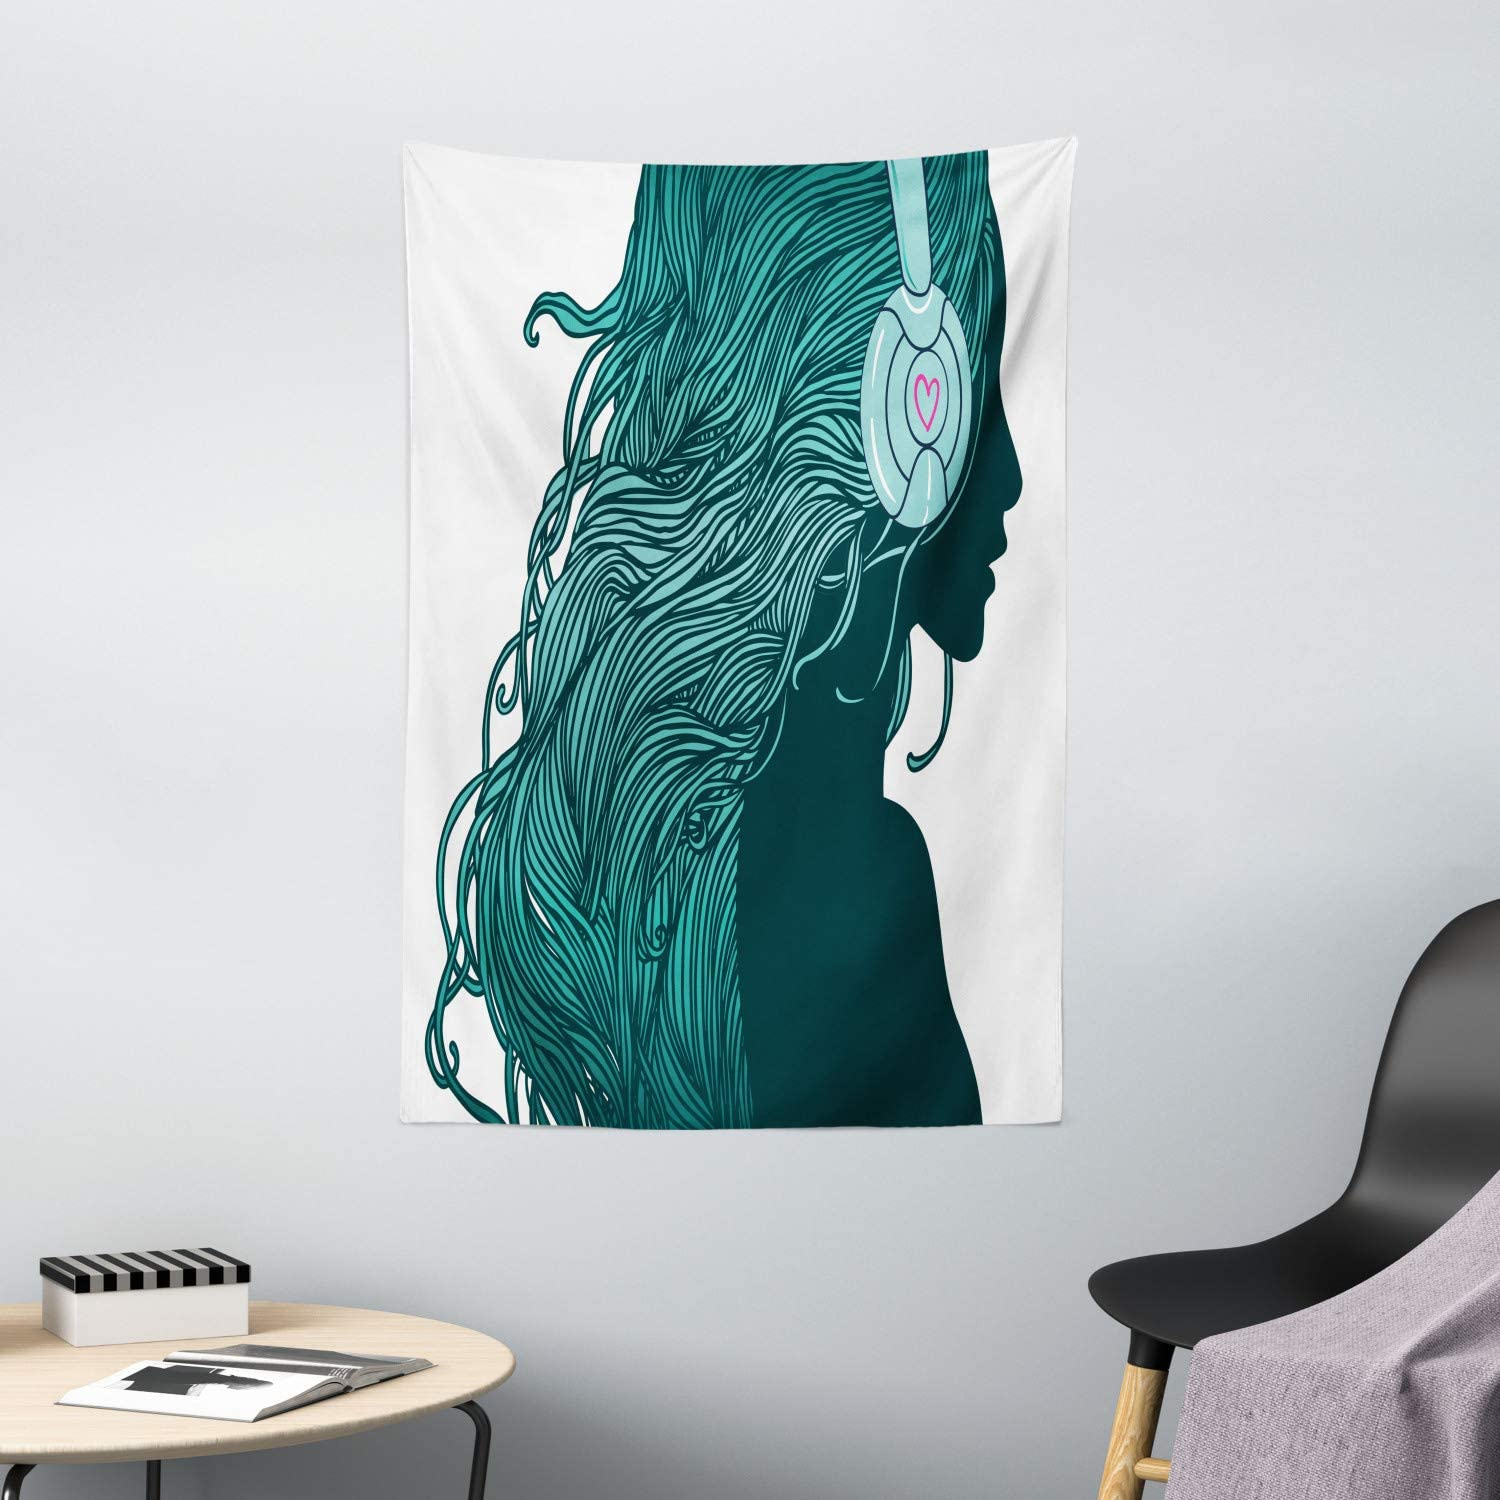 DJ Girl Profile with Long Hair in Headphones Nightclub Silhouettes Party Picture Wall Art Tapestries for Home Bedroom Living Room Dorm Decor Teal White Music Tapestry Wall Hanging